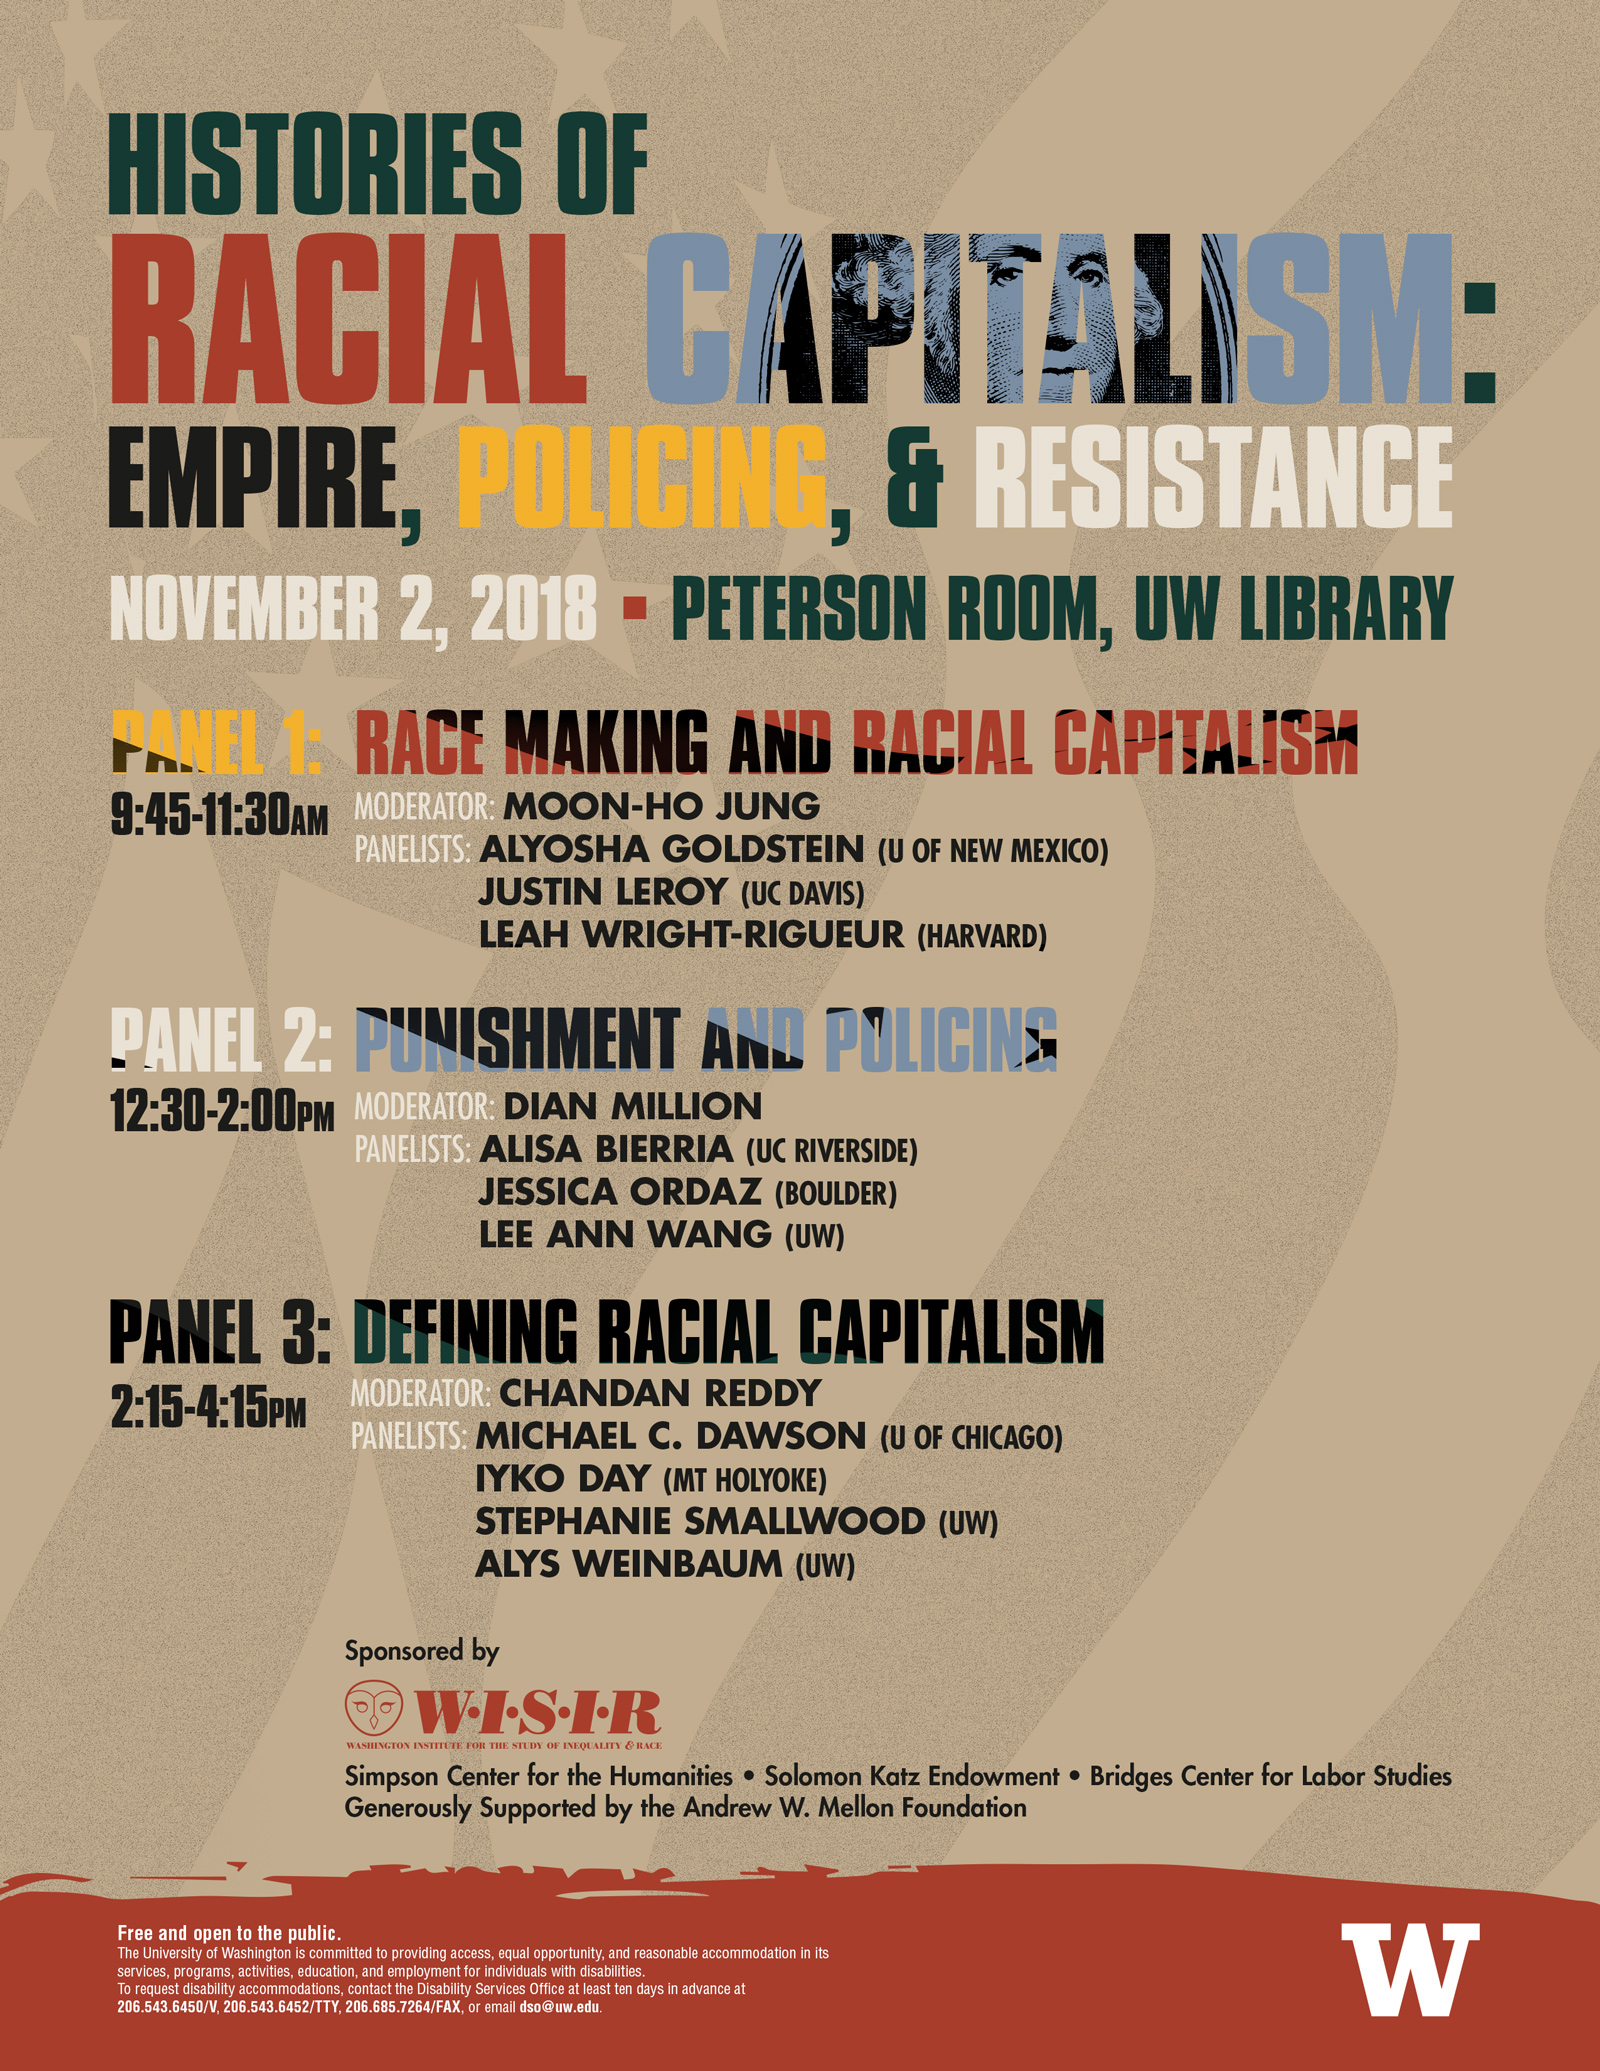 Histories of Racial Capitalism: Empire, Policing, & Resistance